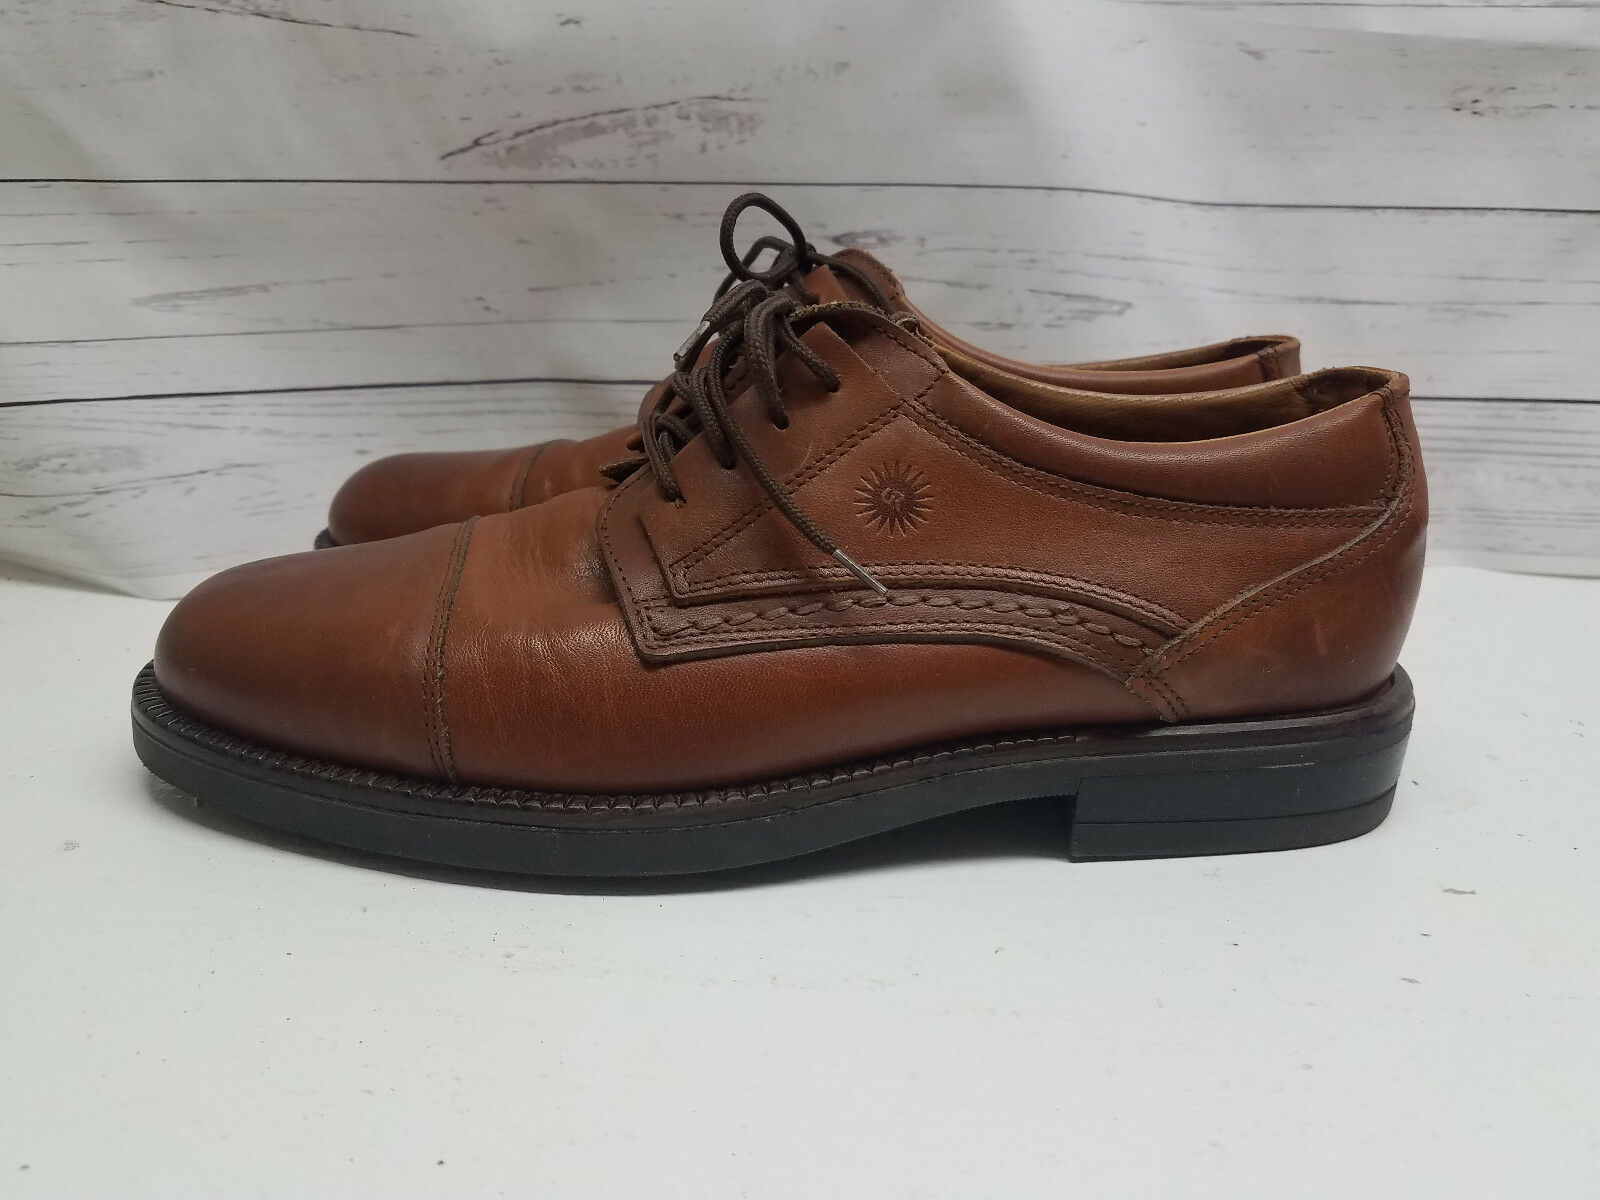 Mens Italian Leather Casual Dress shoes 8.5 D US